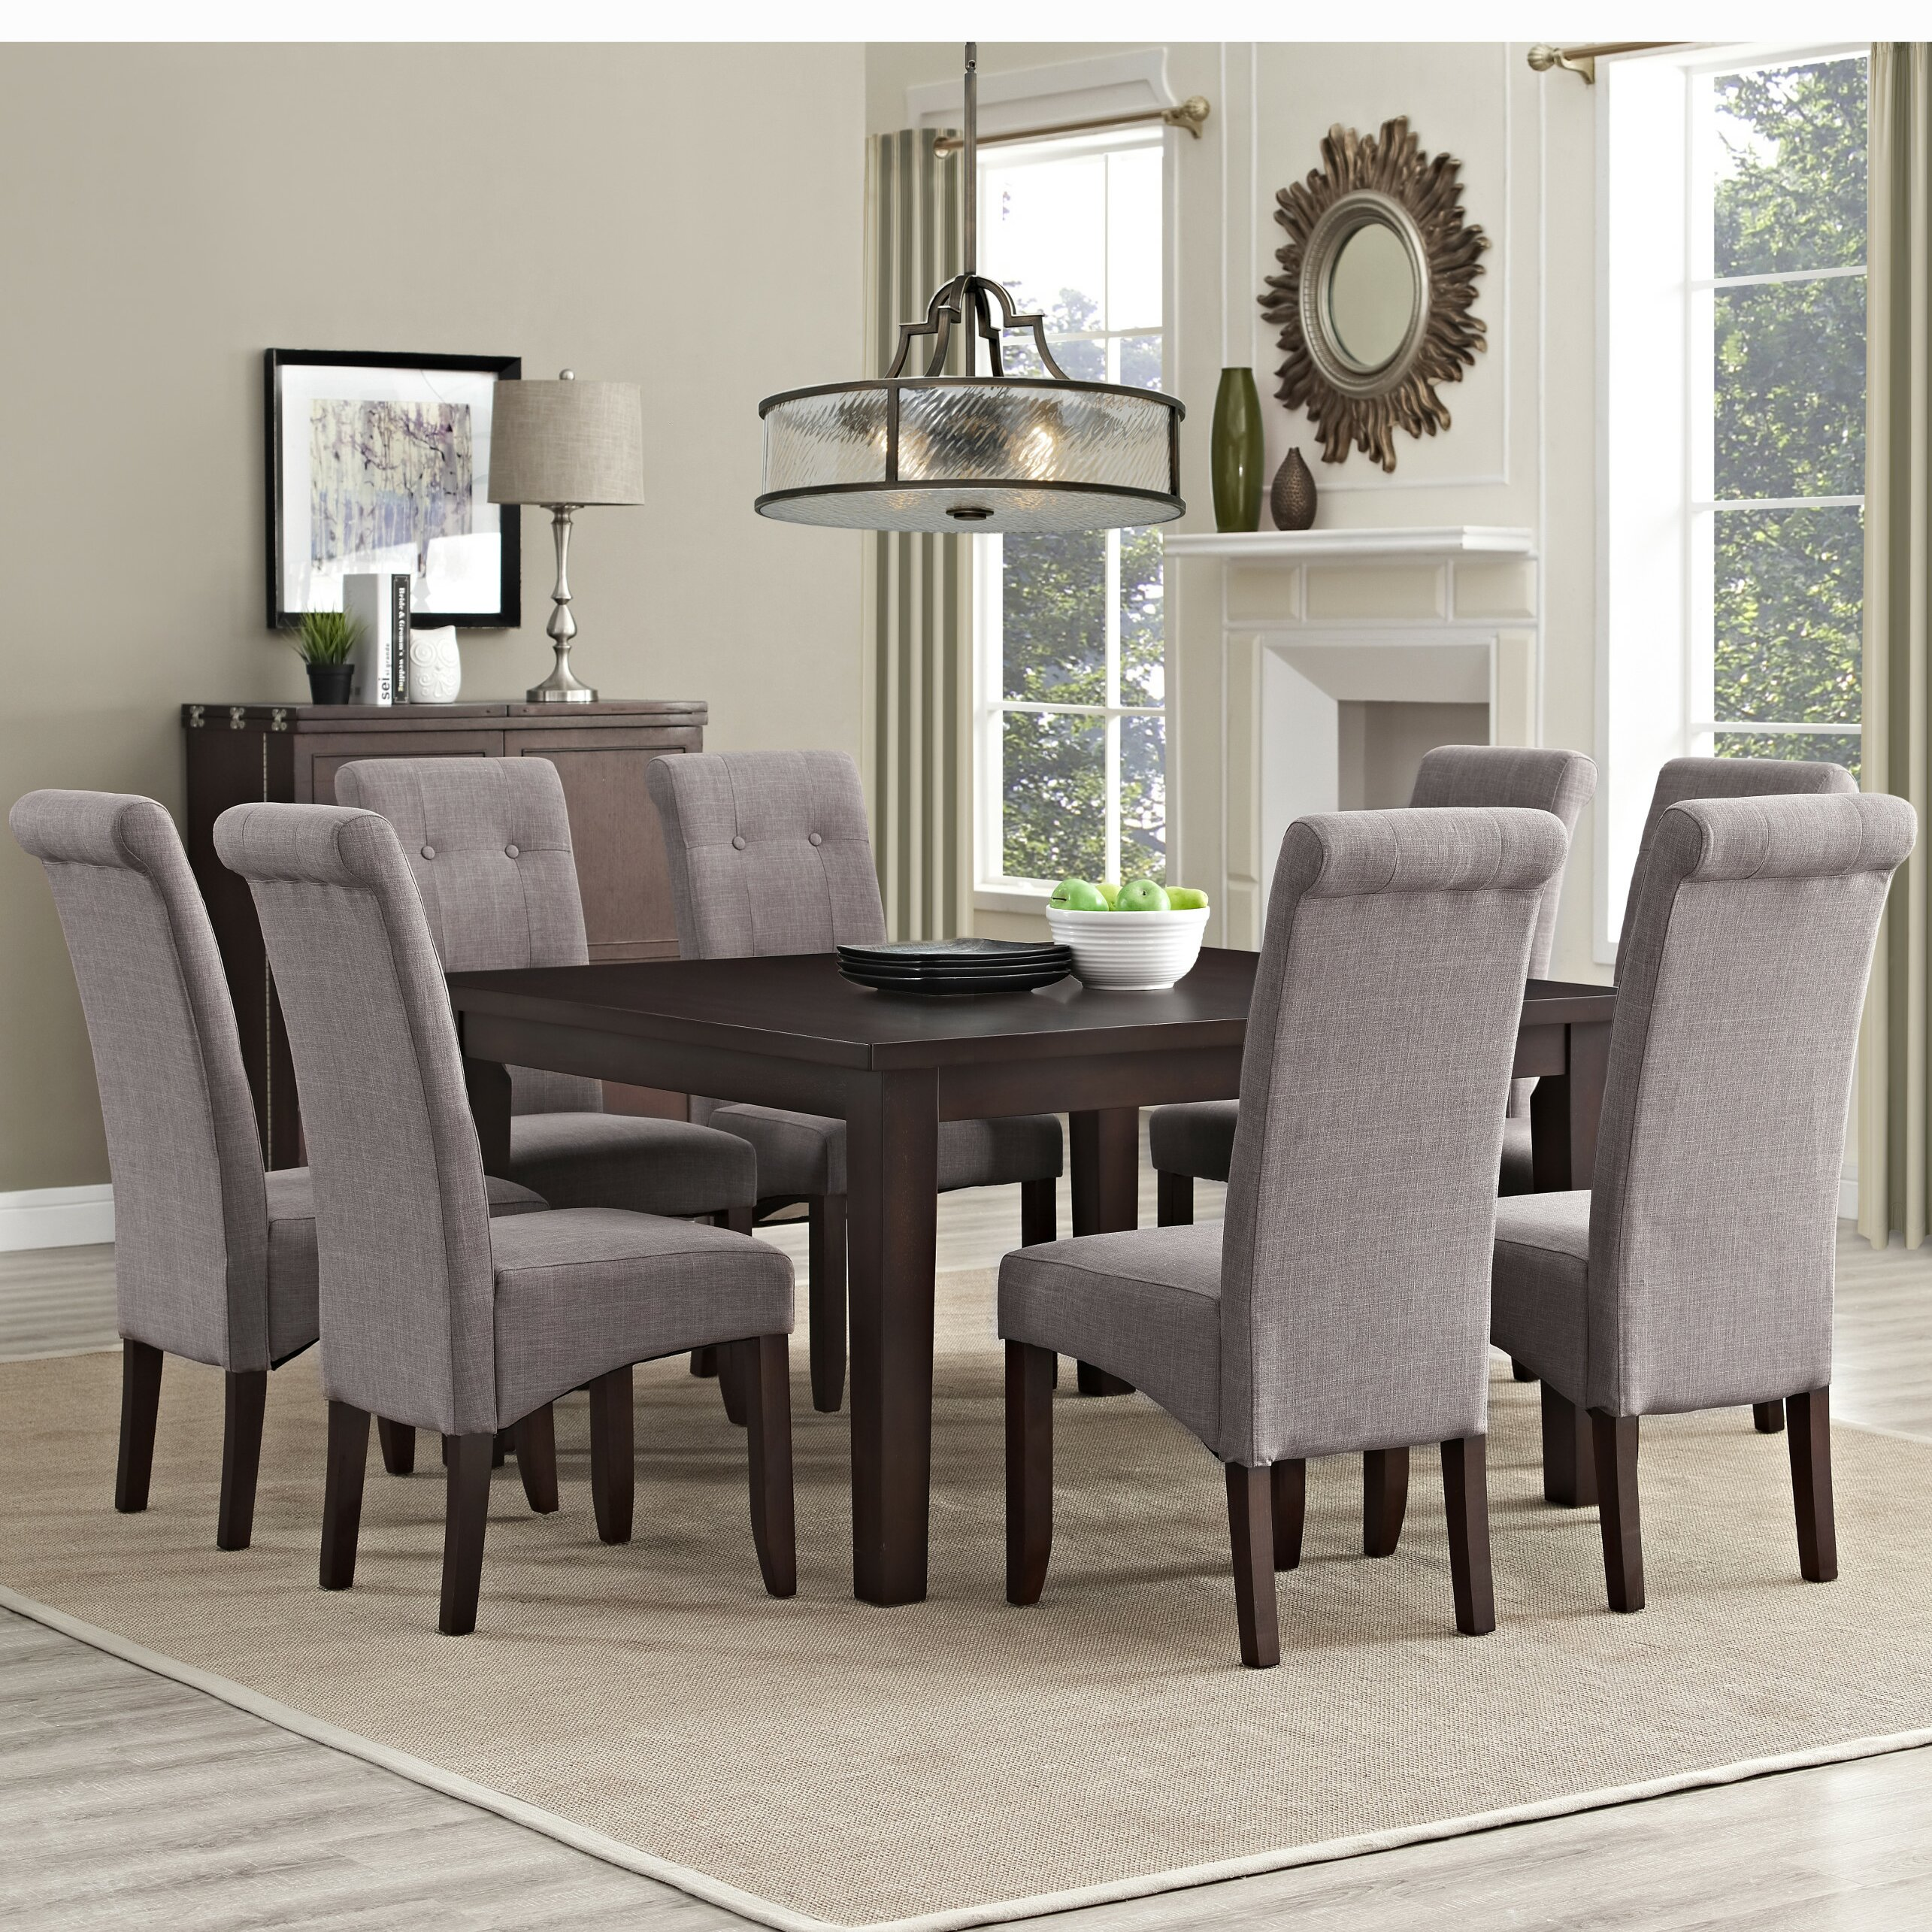 Simpli home eastwood 9 piece dining set reviews wayfair for Dining room collections